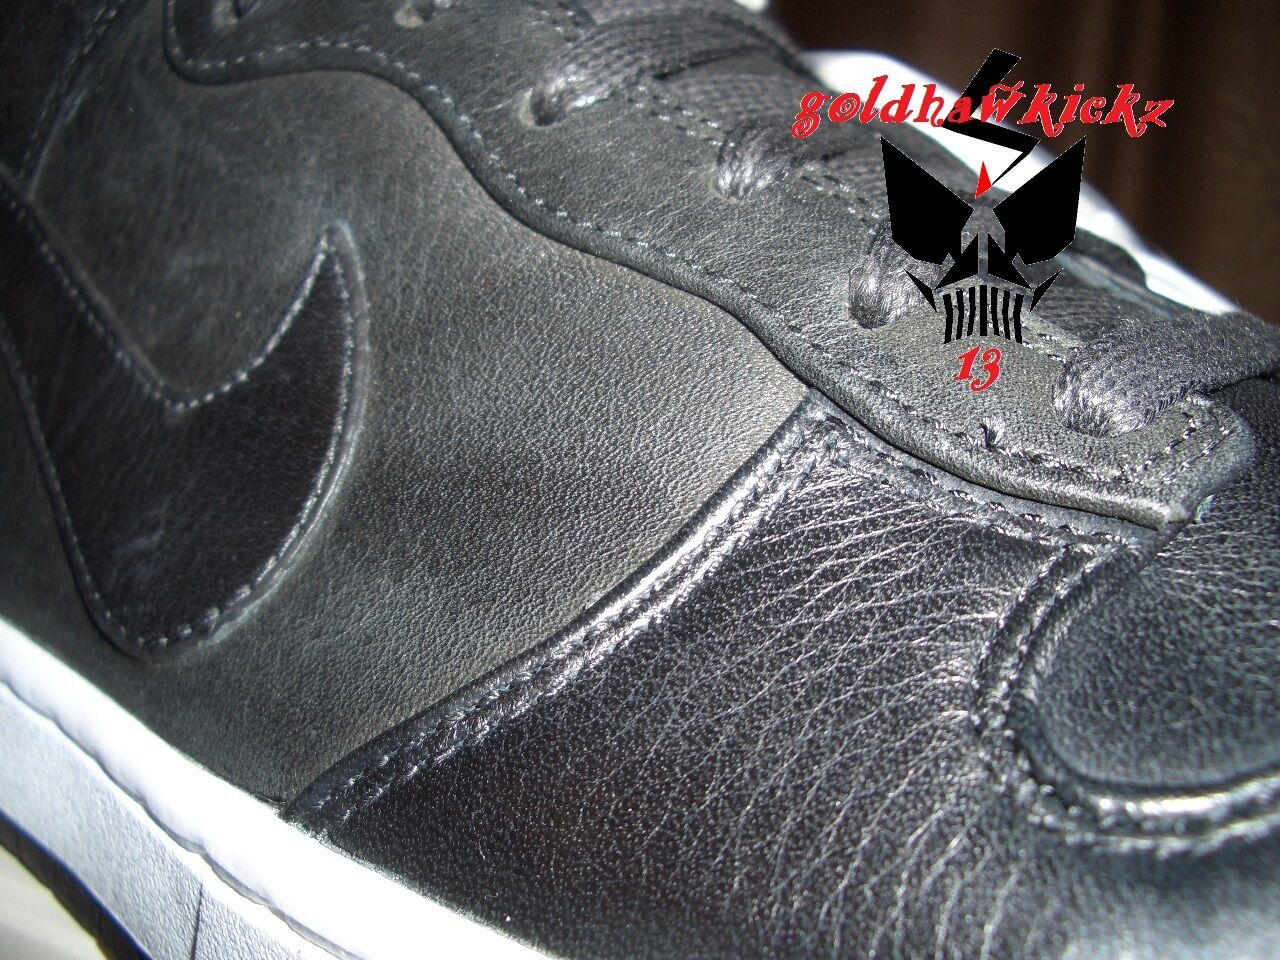 detailed look 0414a ee9c8 ... NIKELAB Nike Dunk Dunk Dunk Lux SP leather Black 718790-001 Lunarlon QS  limited d6cd06 ...